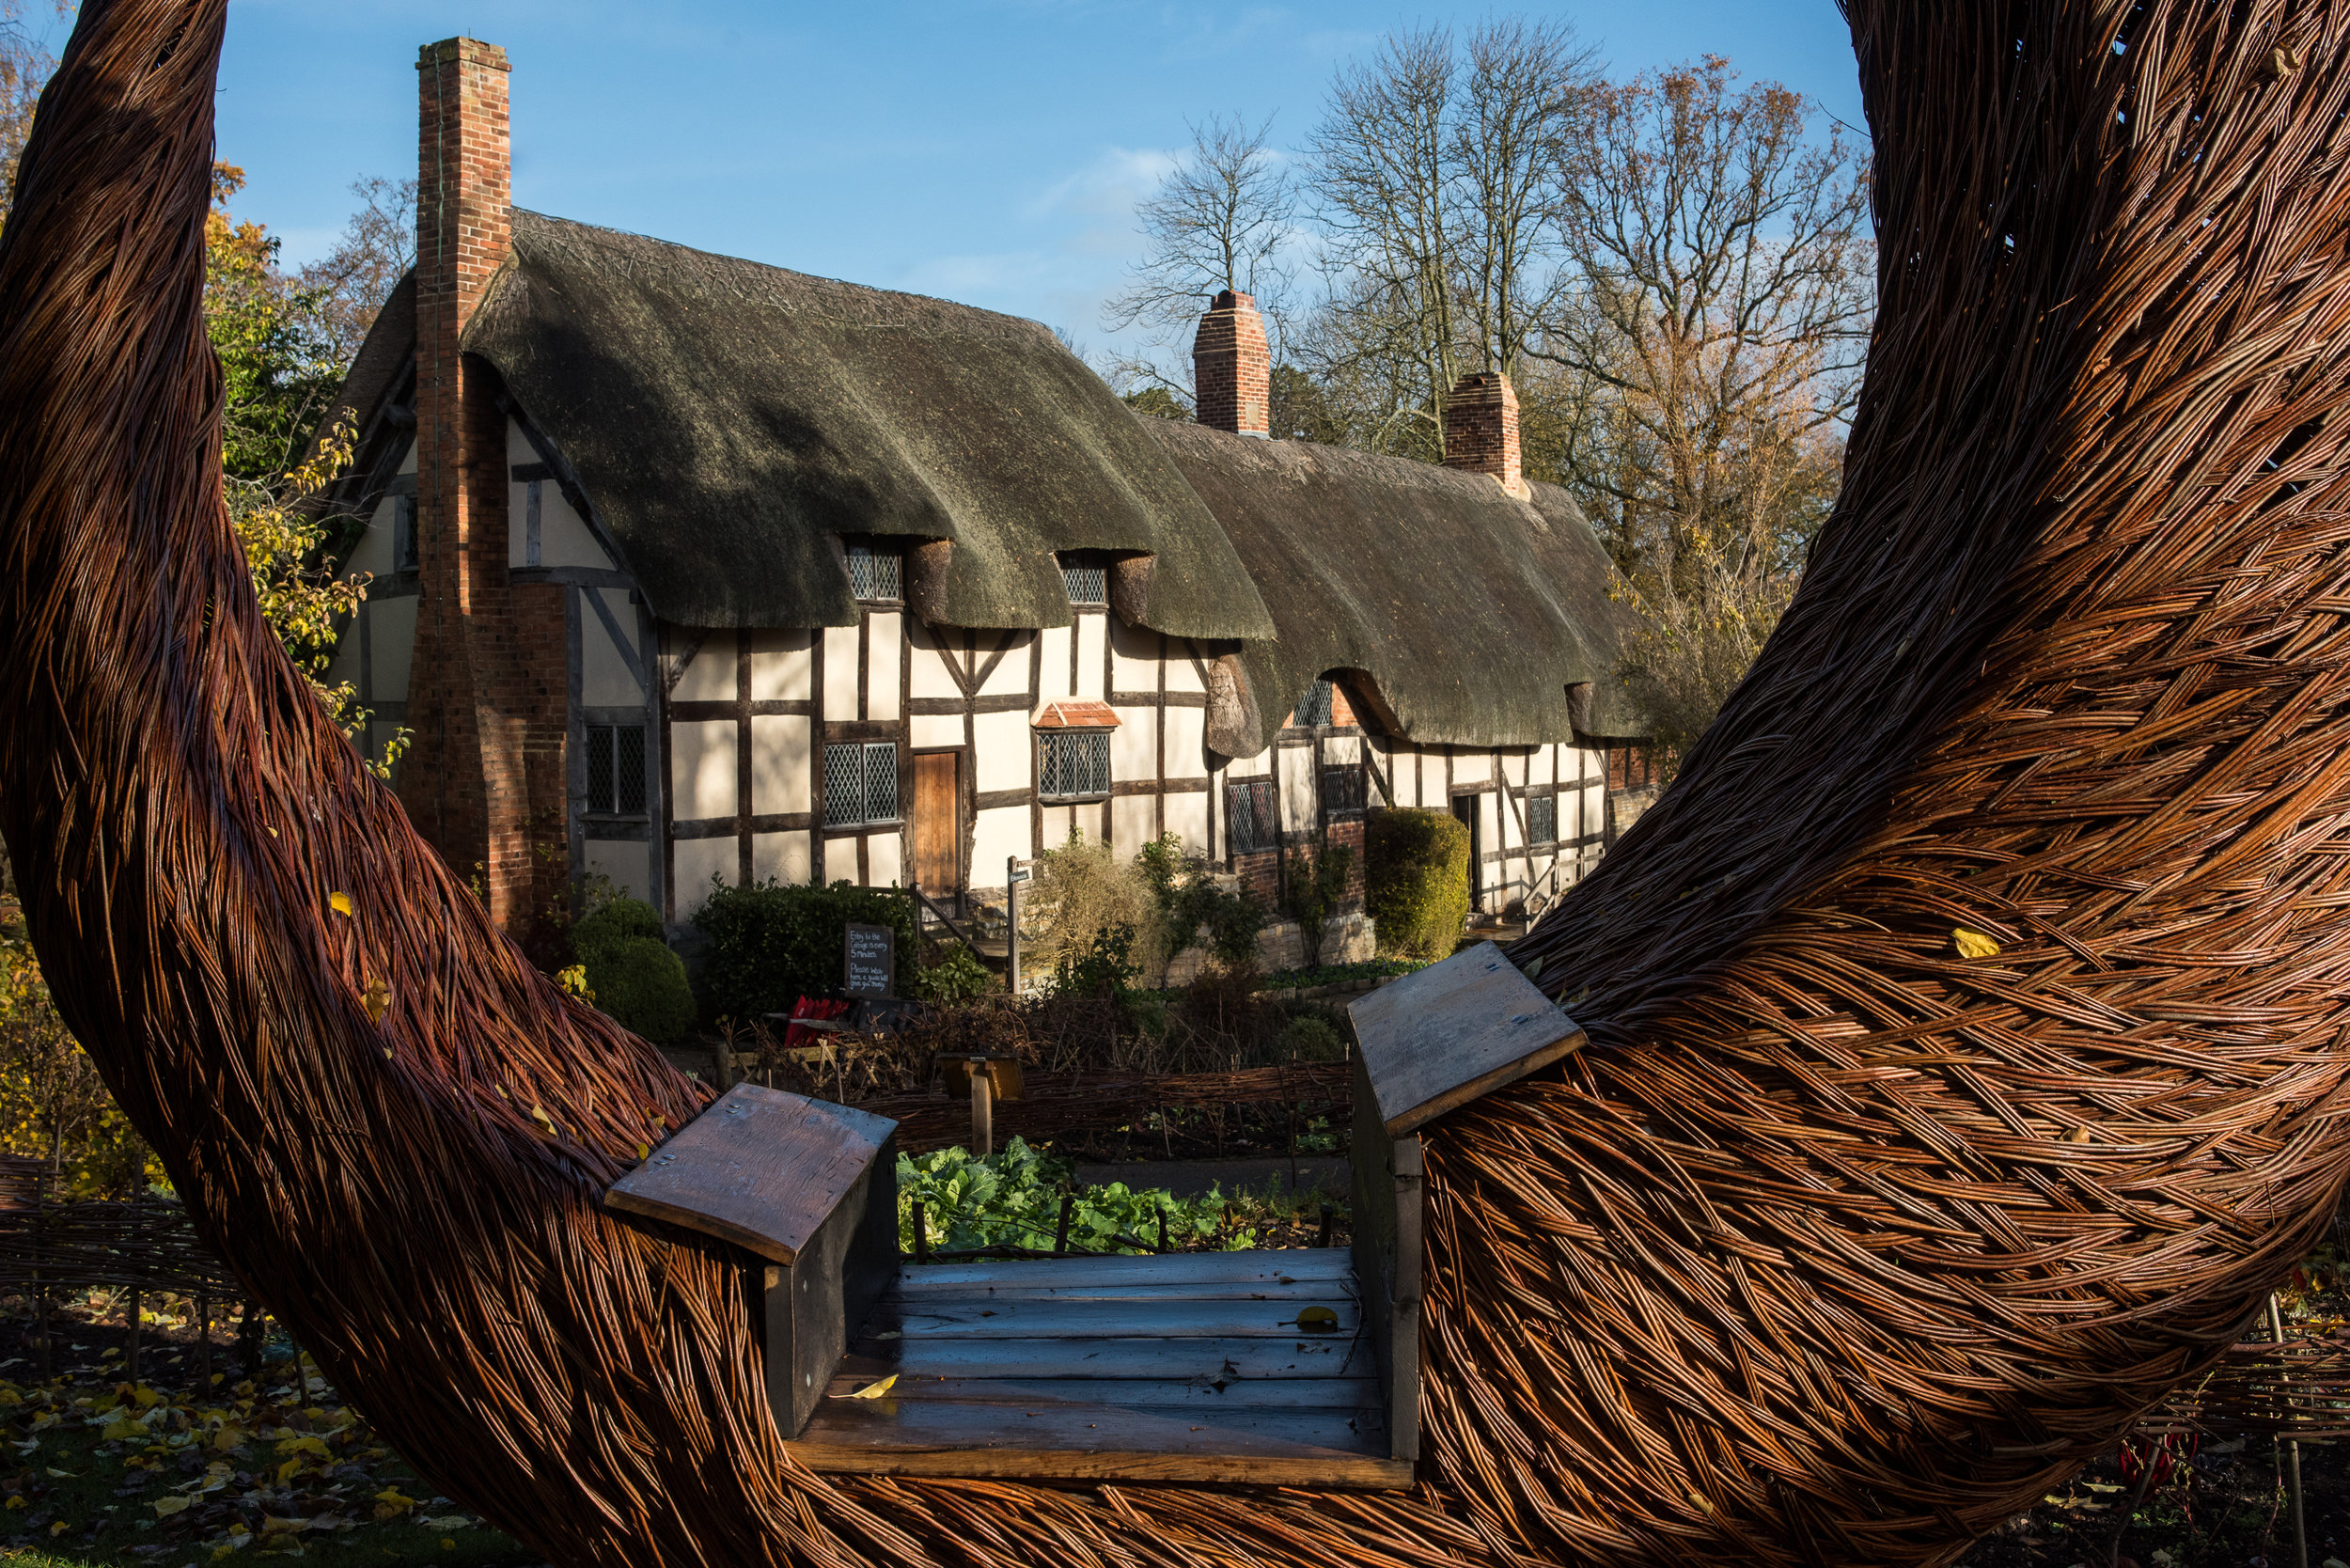 Anne Hathaway's cottage, before she was Shakespeare's wife